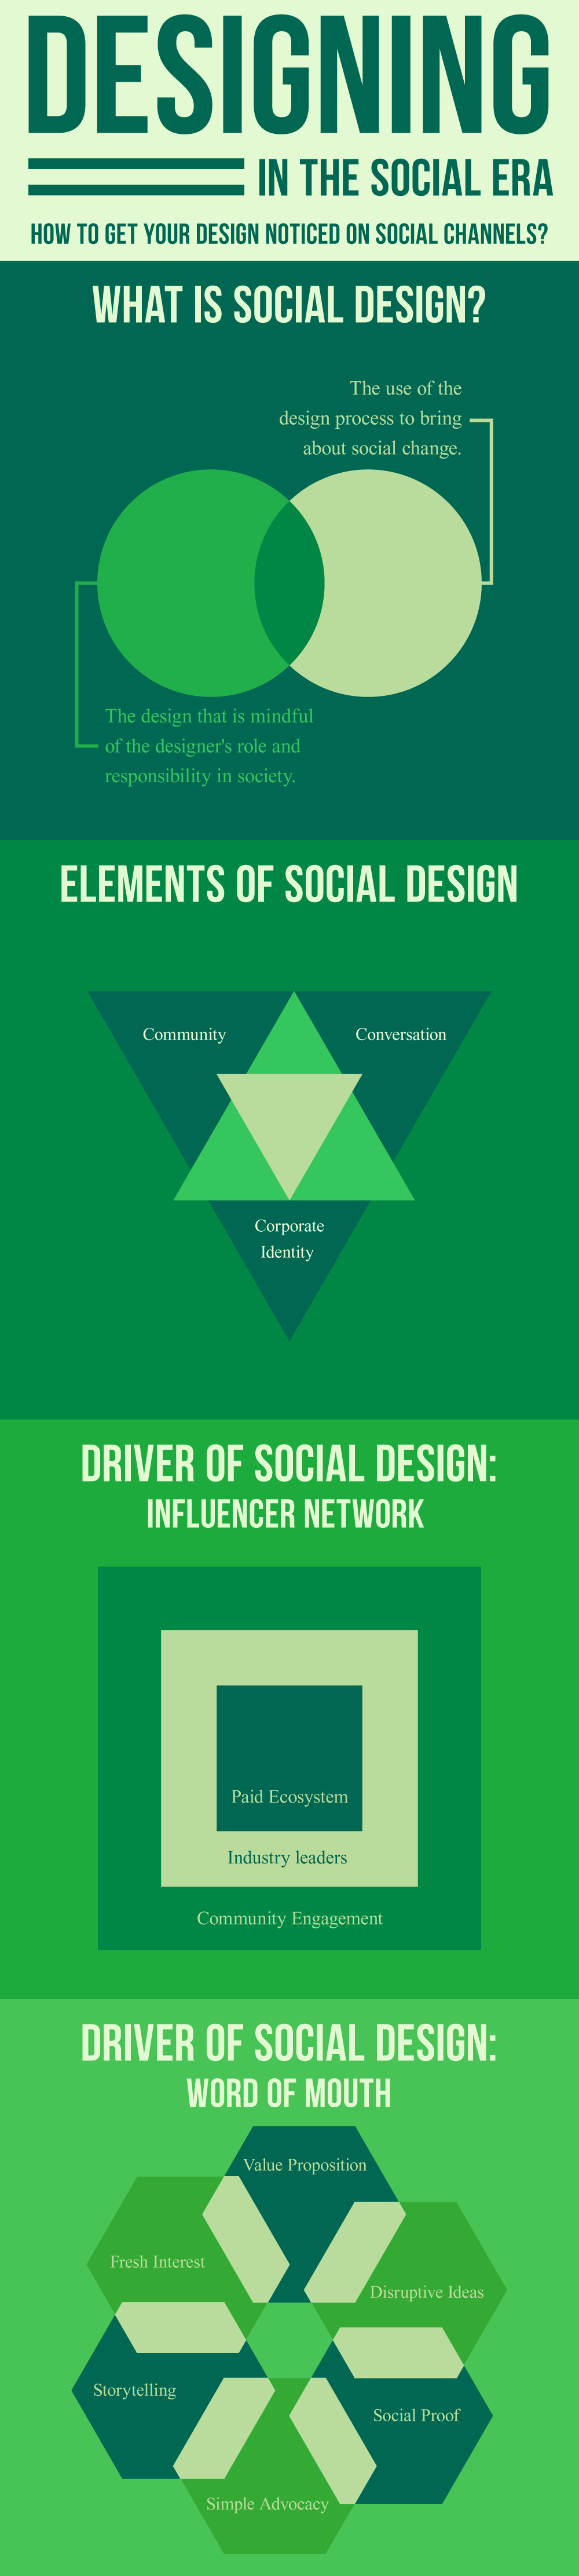 Designing In The Social Era